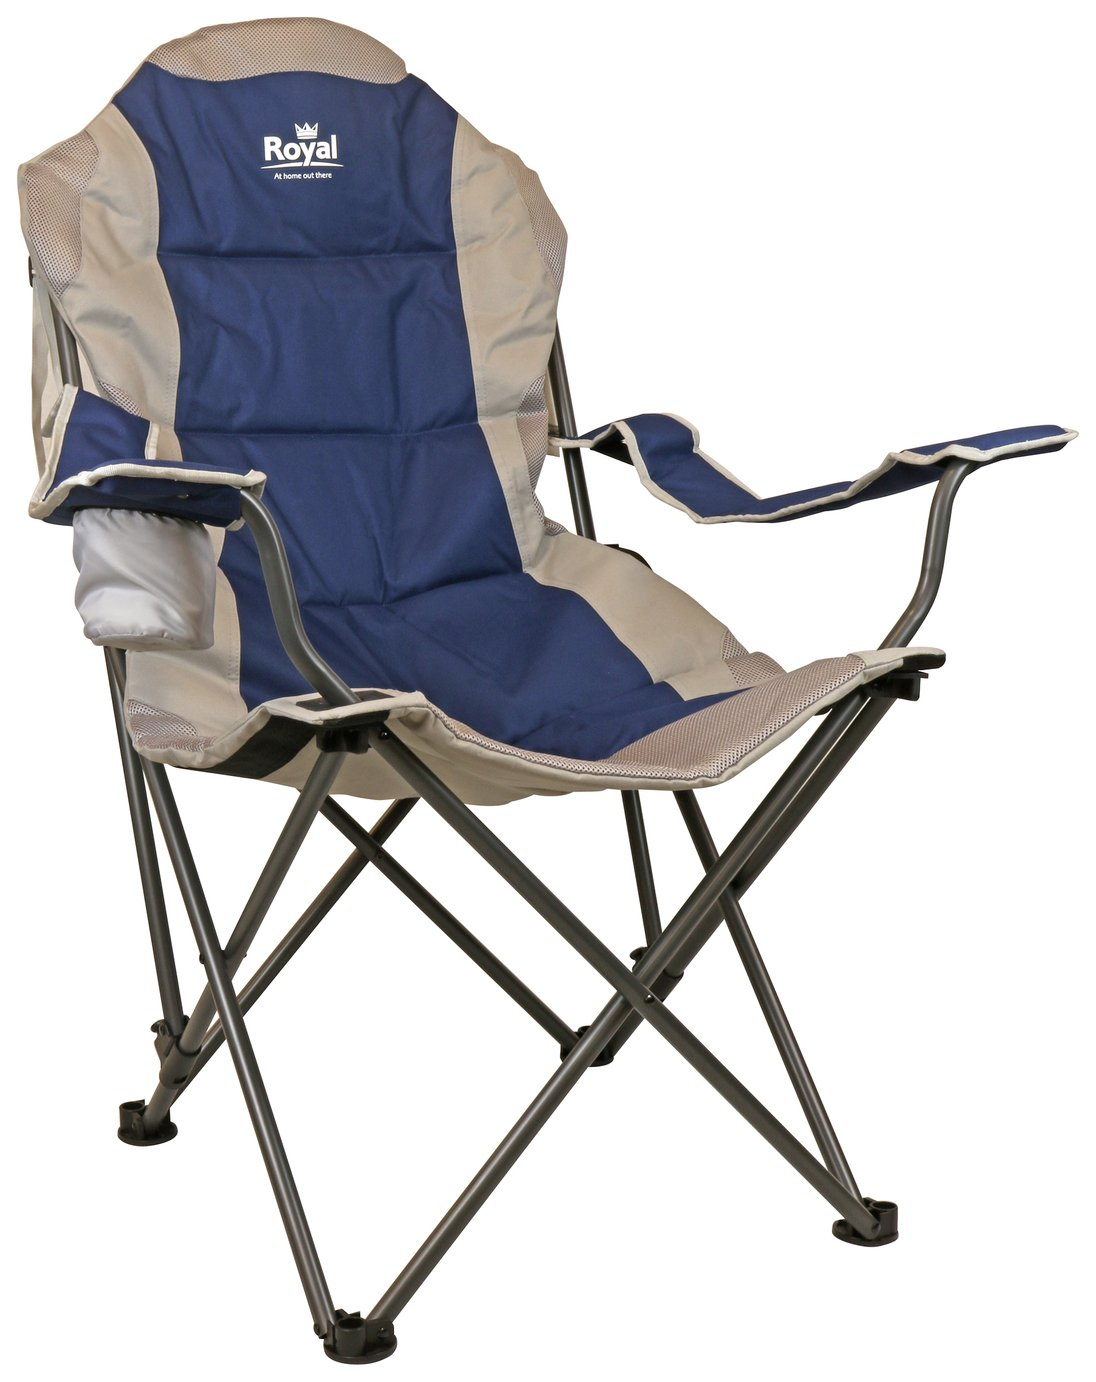 Royal Adjustable Camping Chair - Blue/Silver